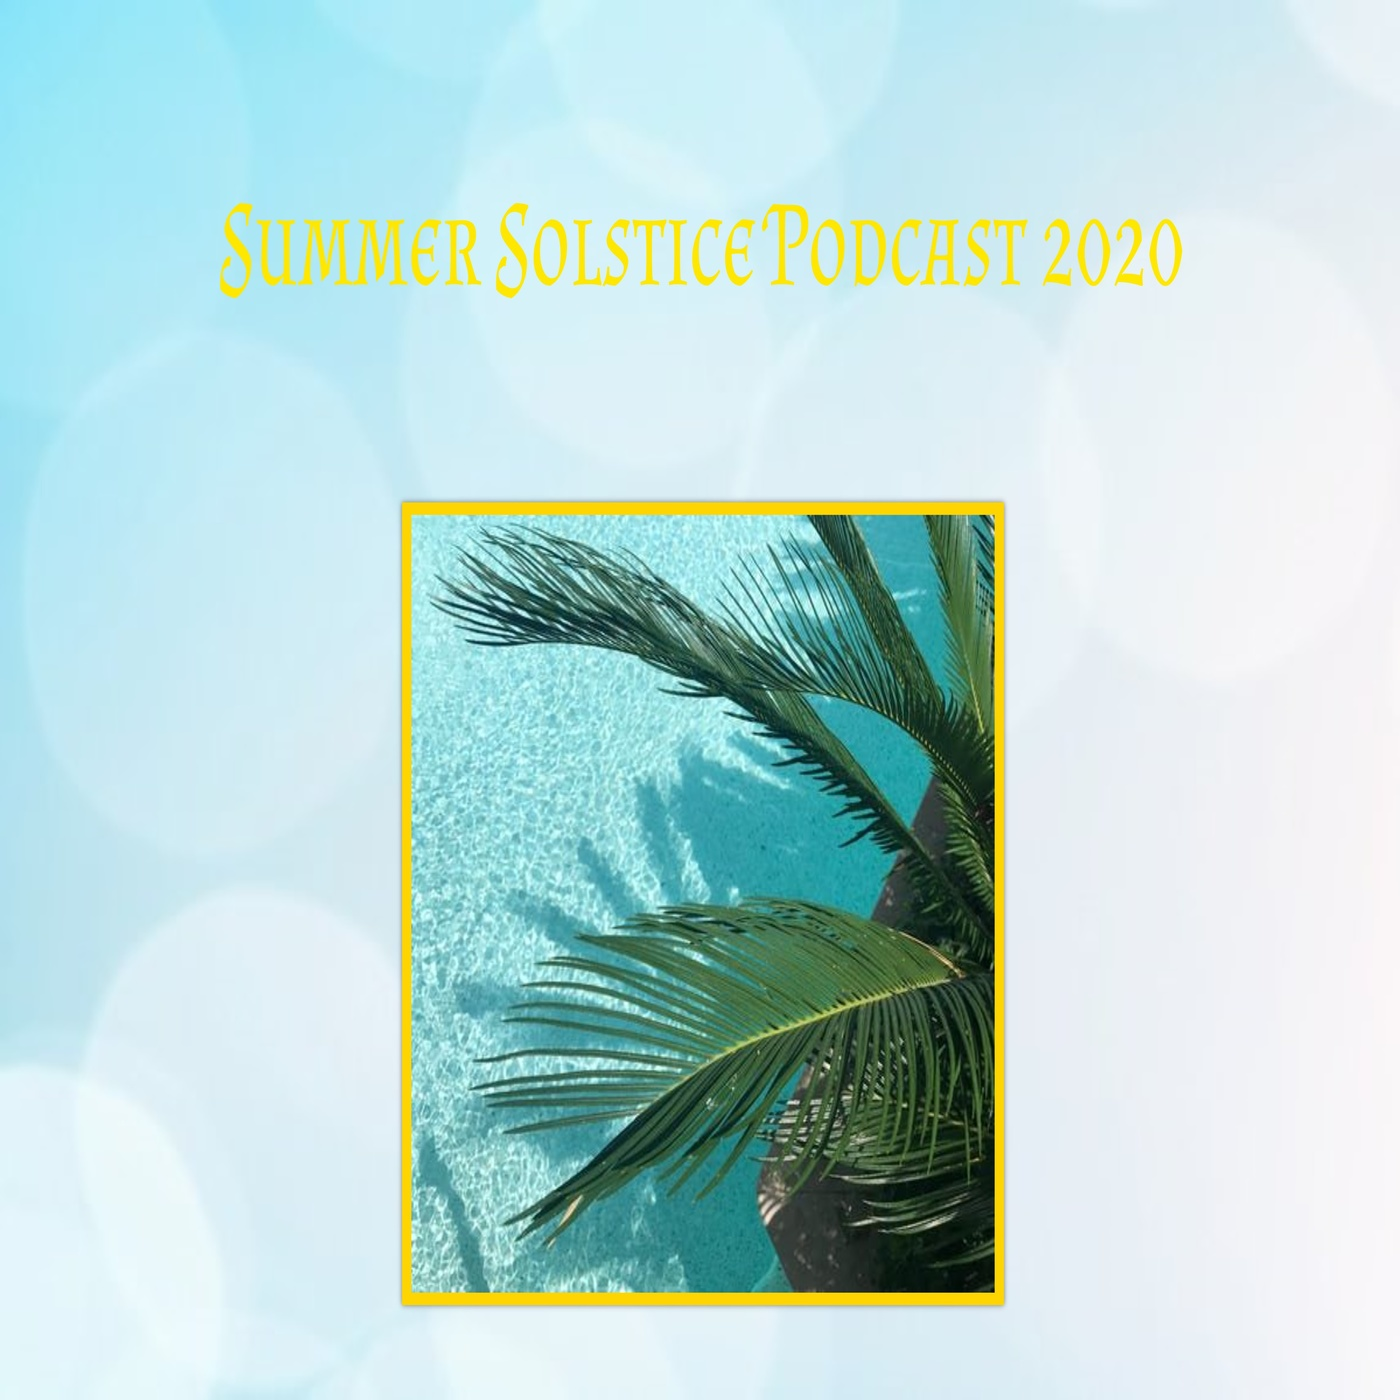 summer_solstice_podcast_2020_1400x1400